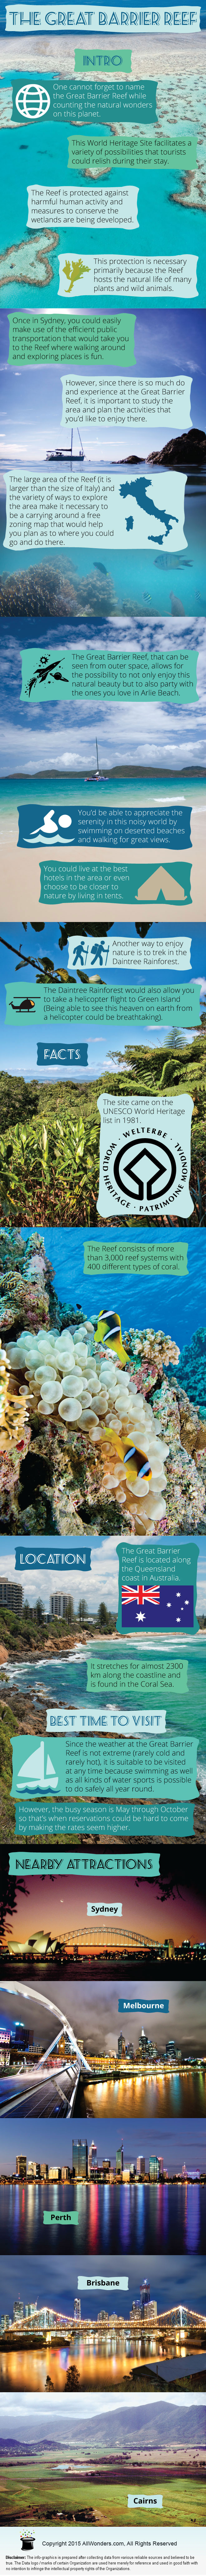 The Great Barrier Reef Facts